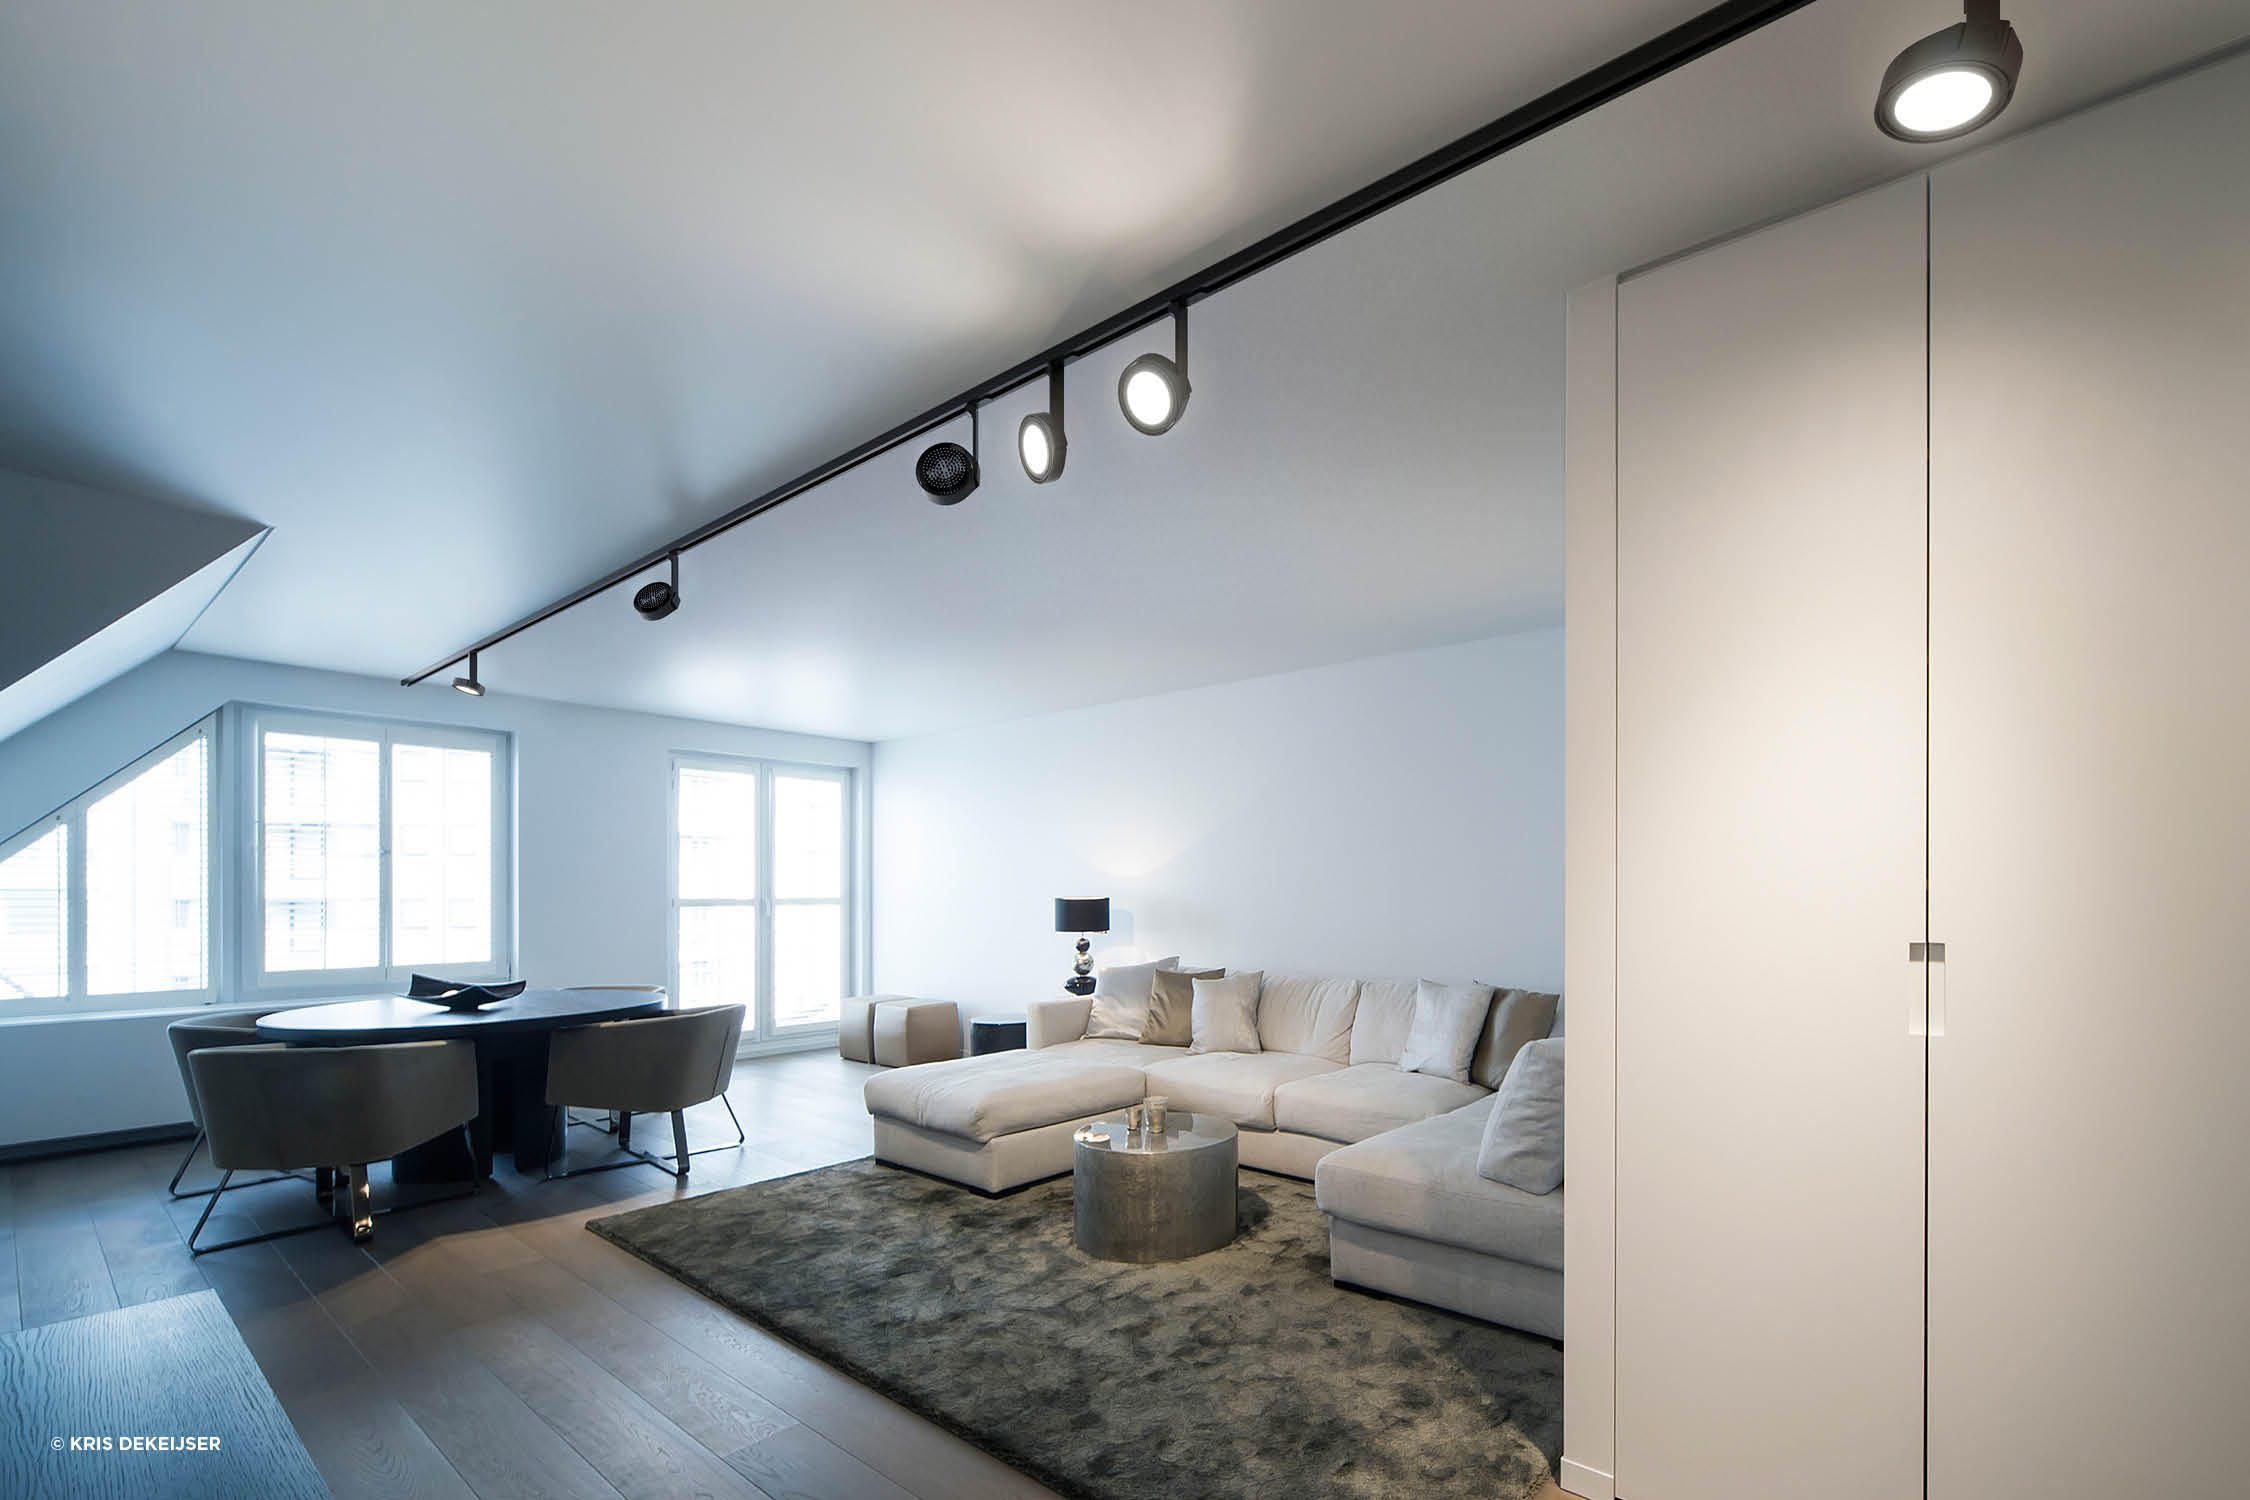 PLUXO 1.0 - Ceiling lights from Wever & Ducré | Architonic